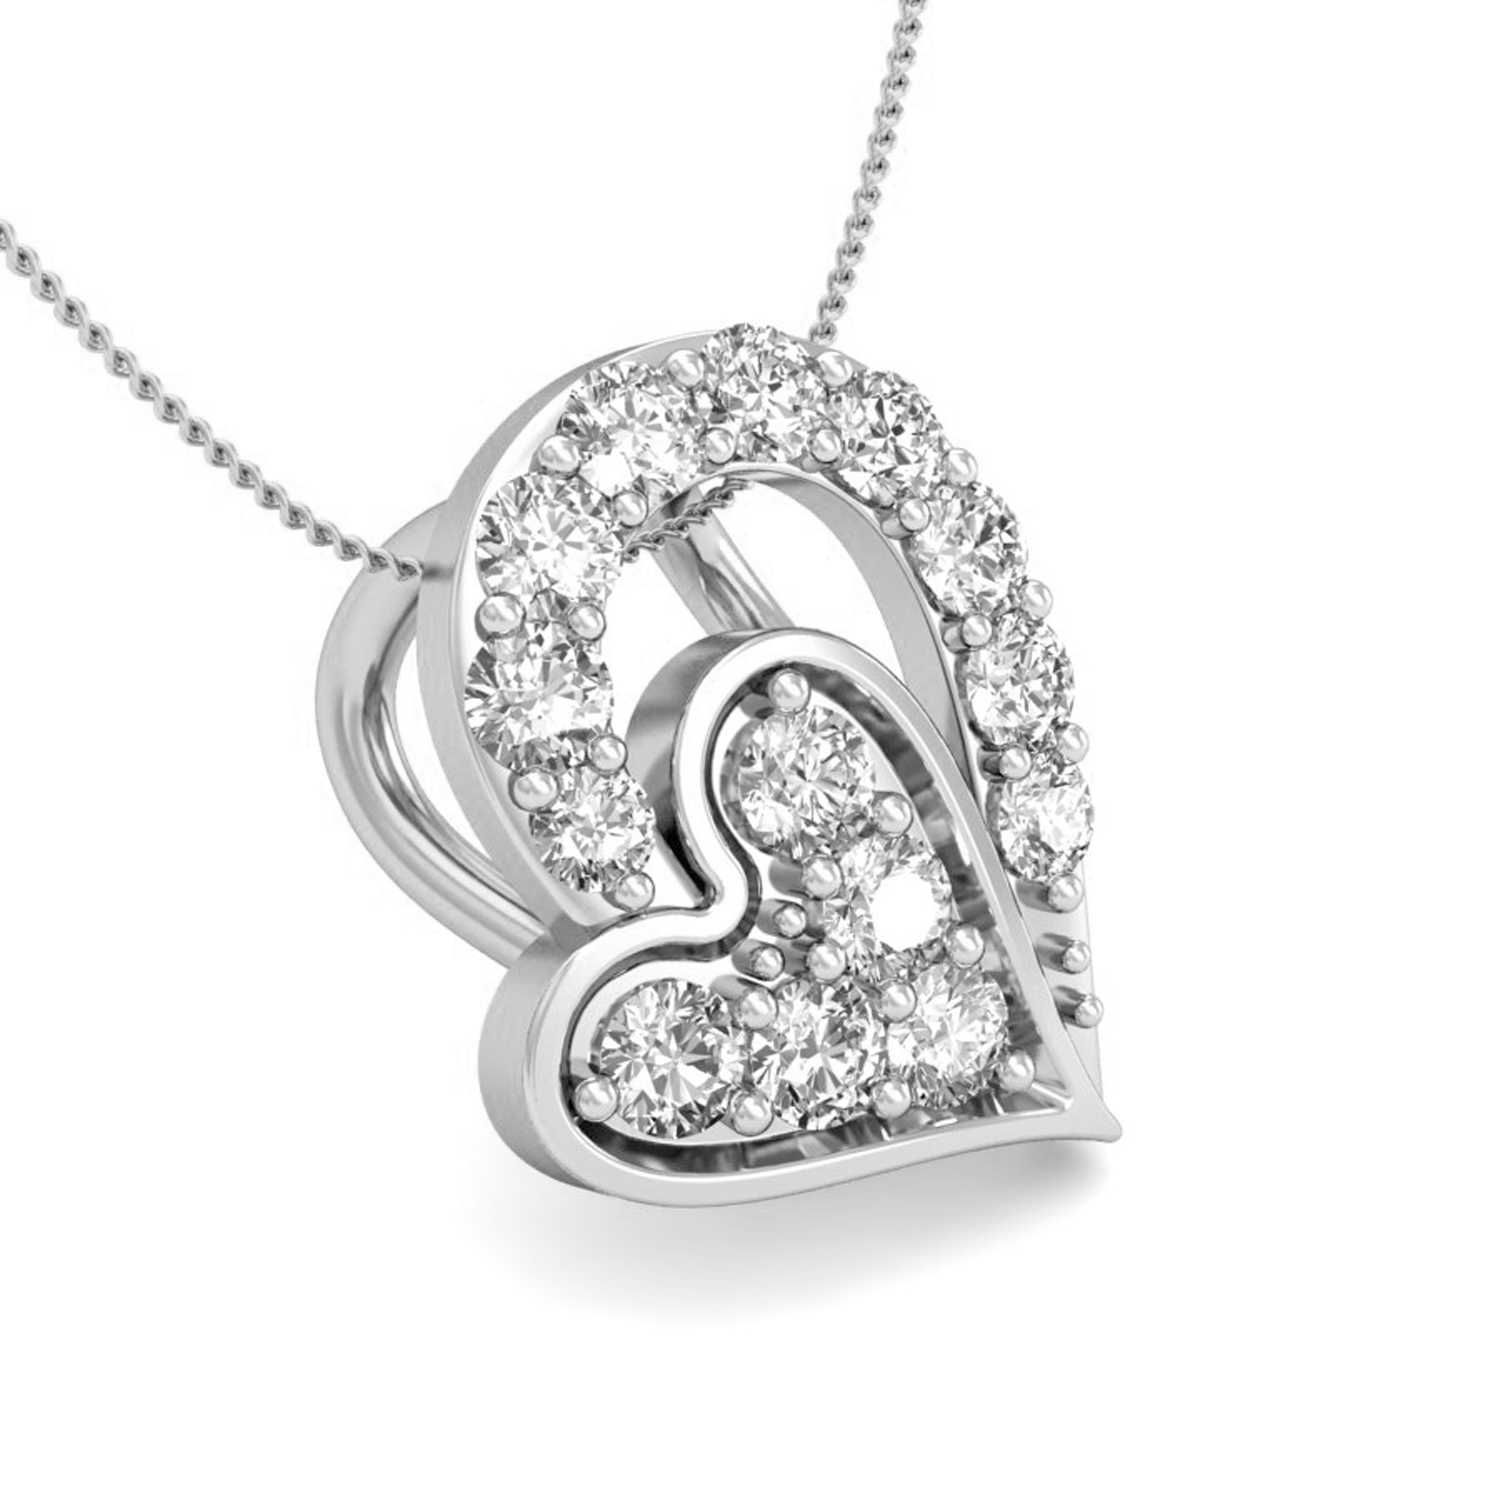 Heart pendant necklace 01ct diamond solid gold natural certified heart pendant necklace 01 ct diamond solid gold natural certified aloadofball Images